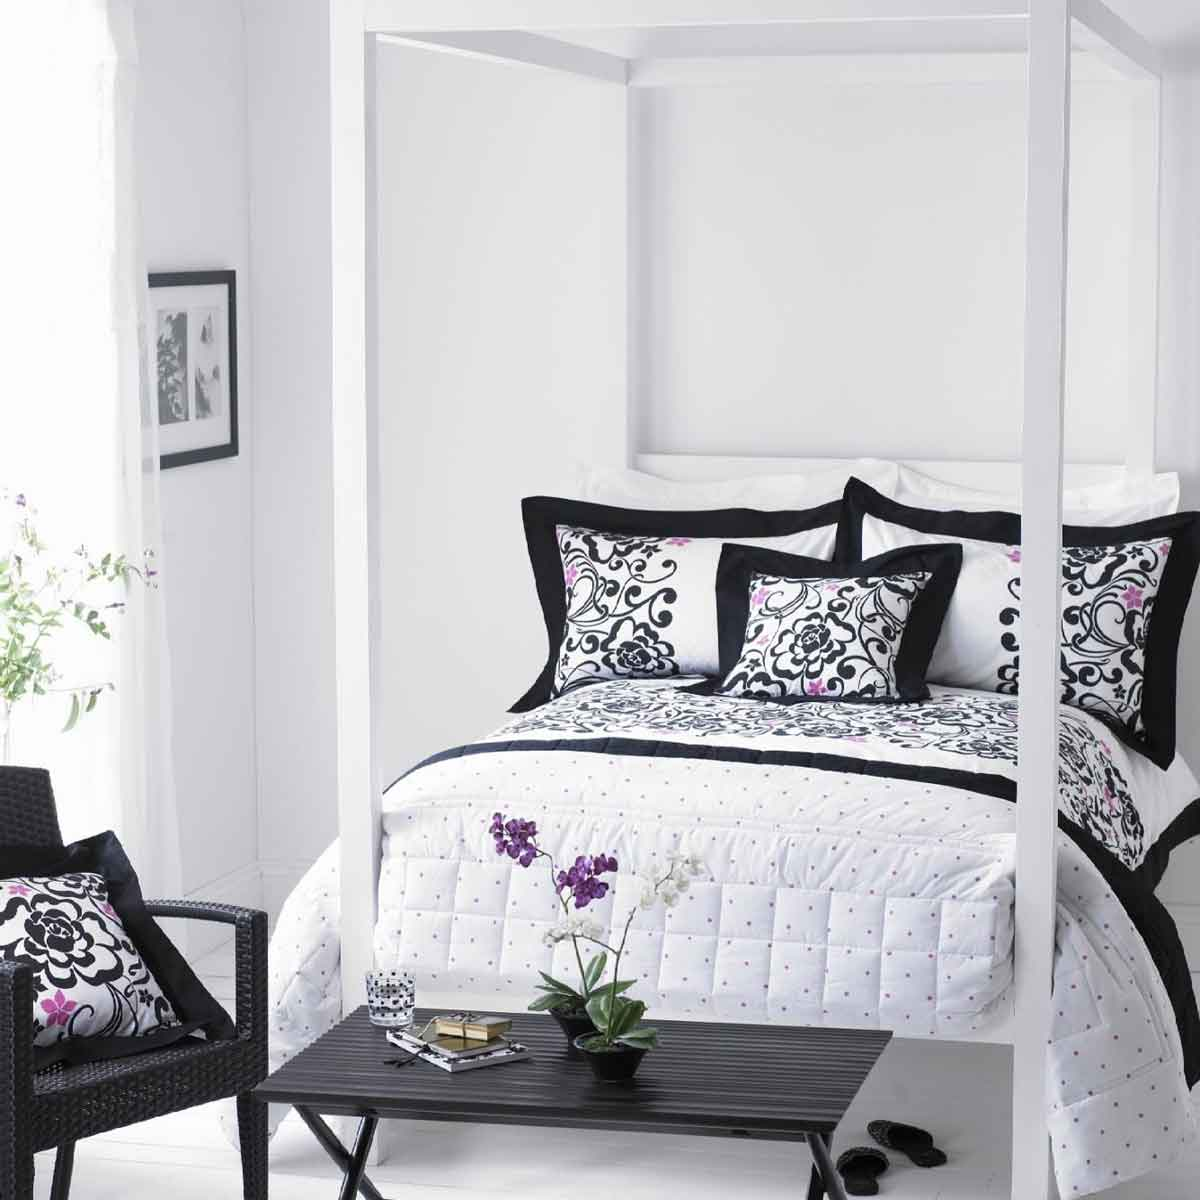 Black And White Bedroom Decorating Ideas. Black And White Bedroom Decorating Ideas   OnceUponATeaTime